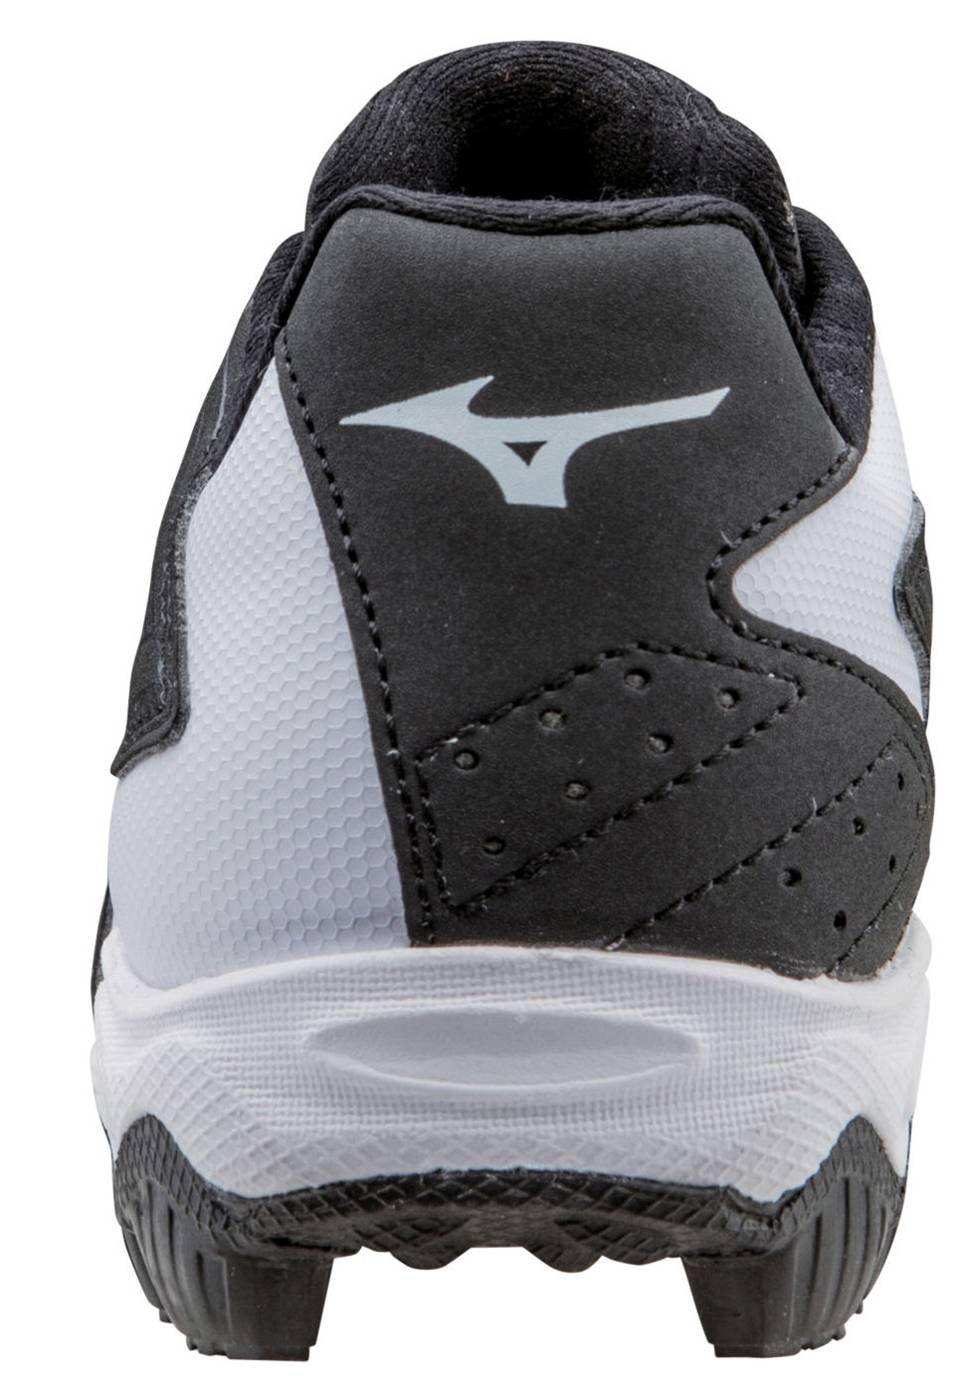 Mizuno Youth 9 Spike Advanced Franchise 8 Low Baseball